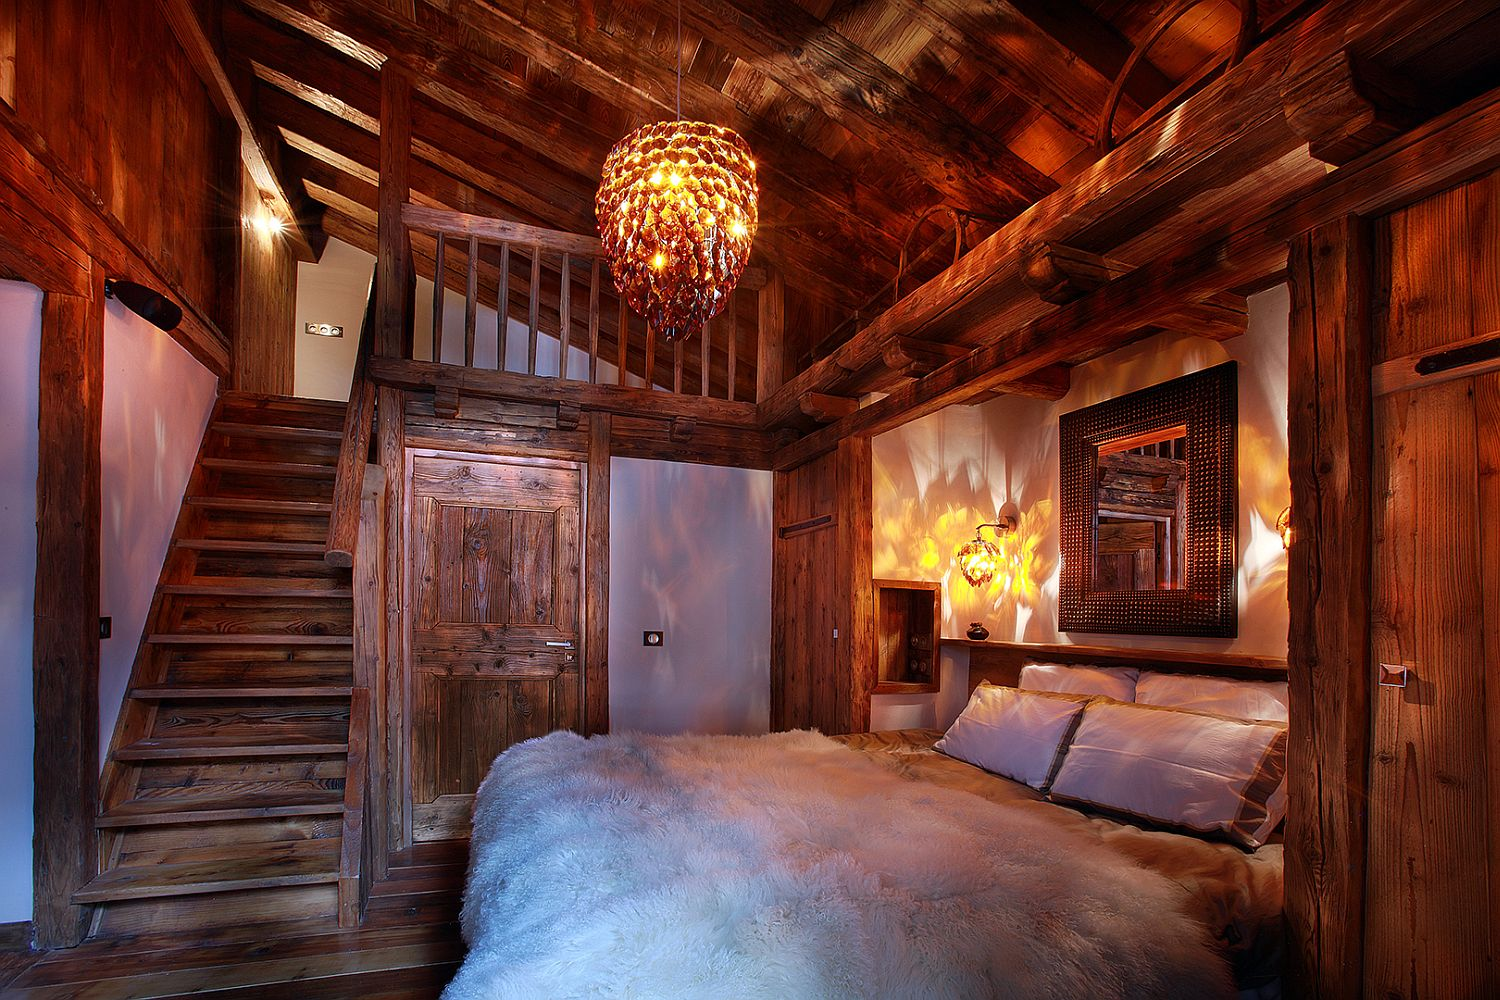 Plush textures add to the inviting charm of the chalet bedroom